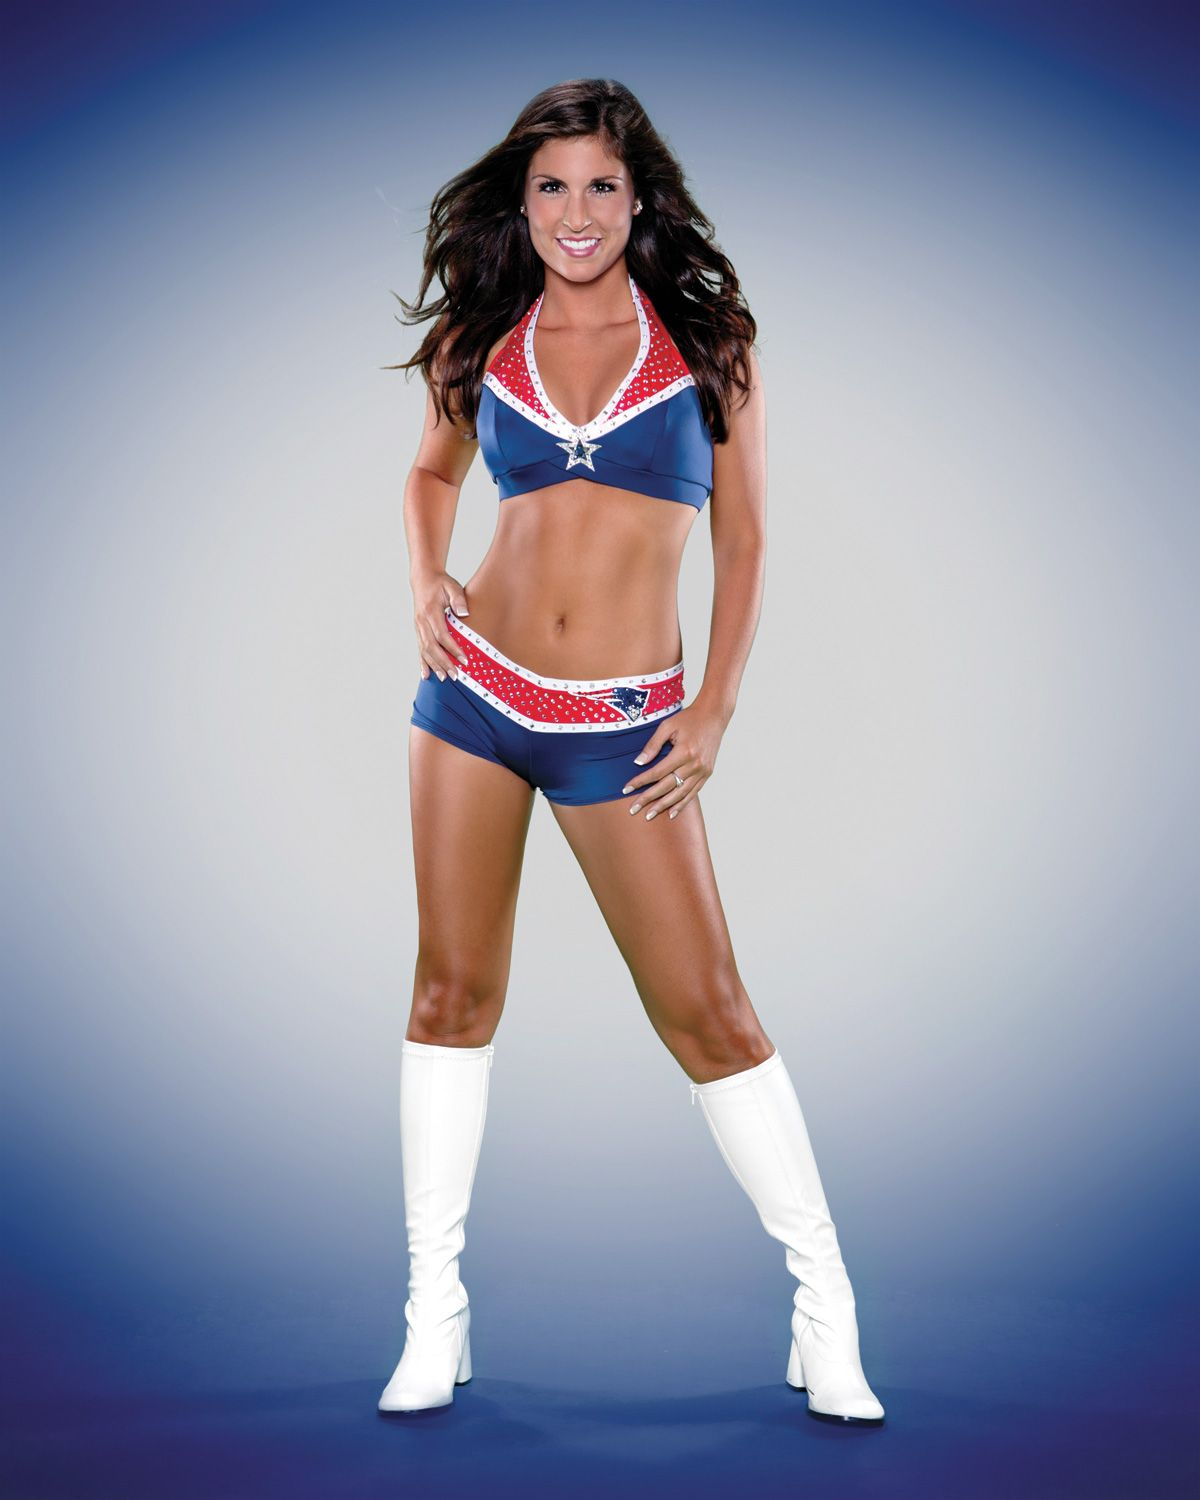 Patriots Cheerleaders And Patriots On Pinterest: NE Patriots Cheerleaders